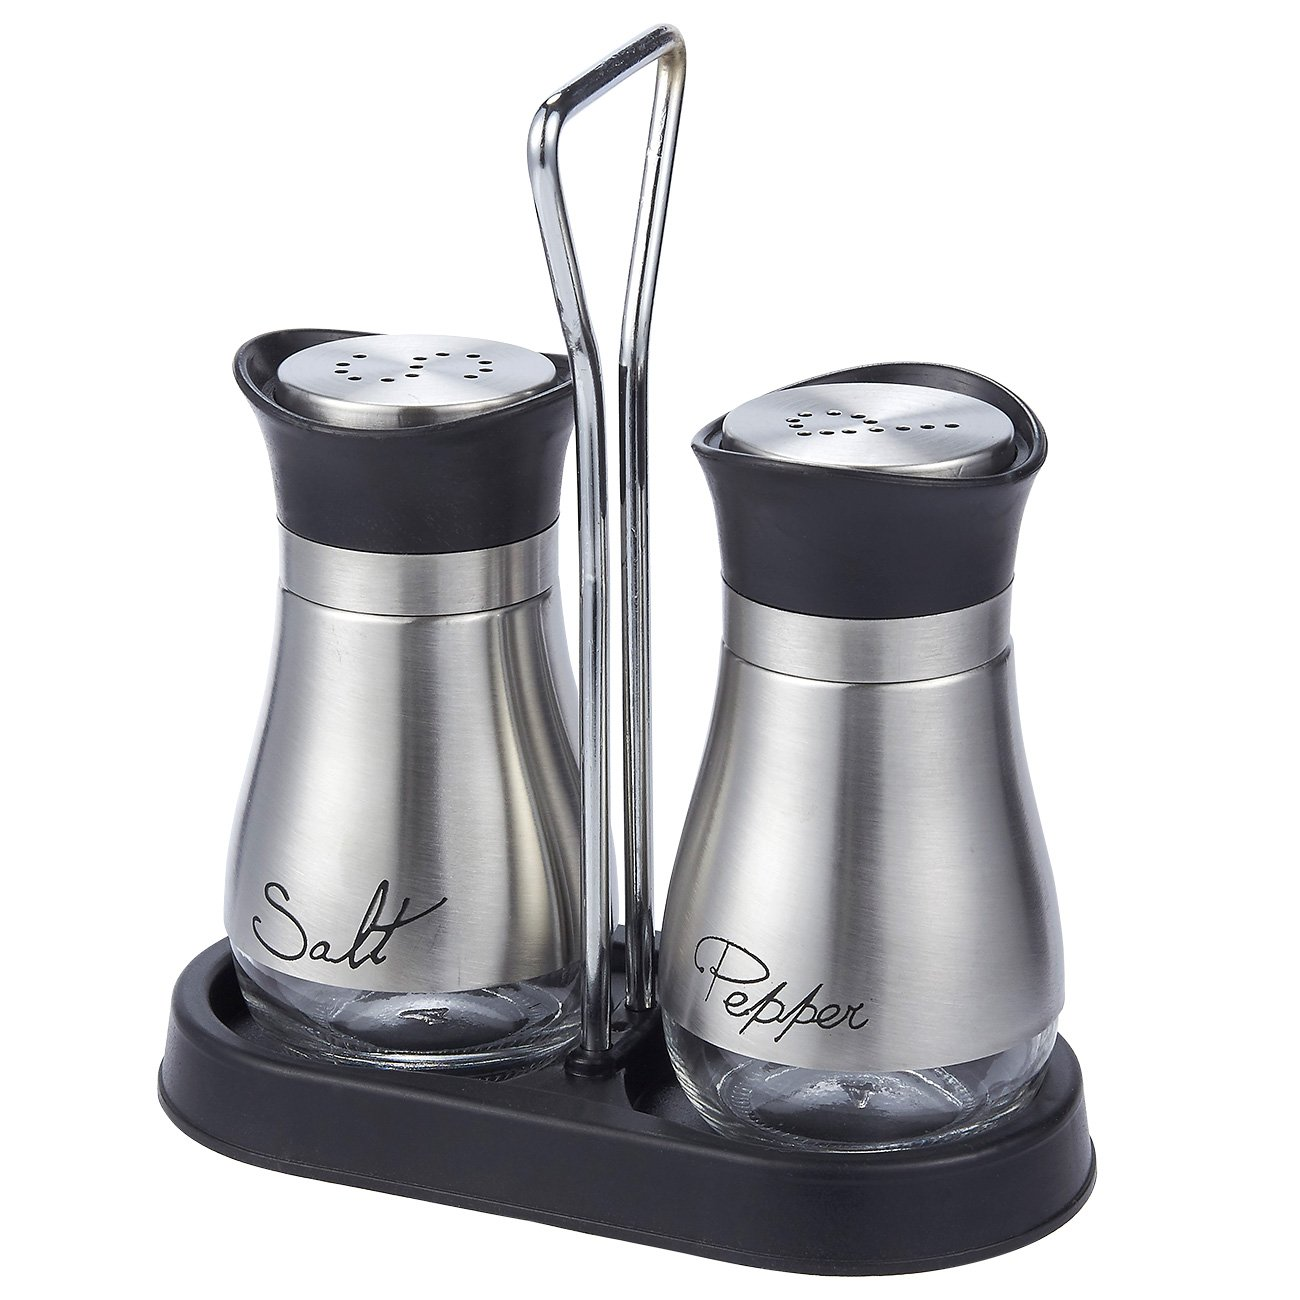 Salt and Pepper Shakers Set - High Grade Stainless Steel with Glass Bottom and 4' Stand - 4'' x 6'' x 2'', 4 oz. by Juvale